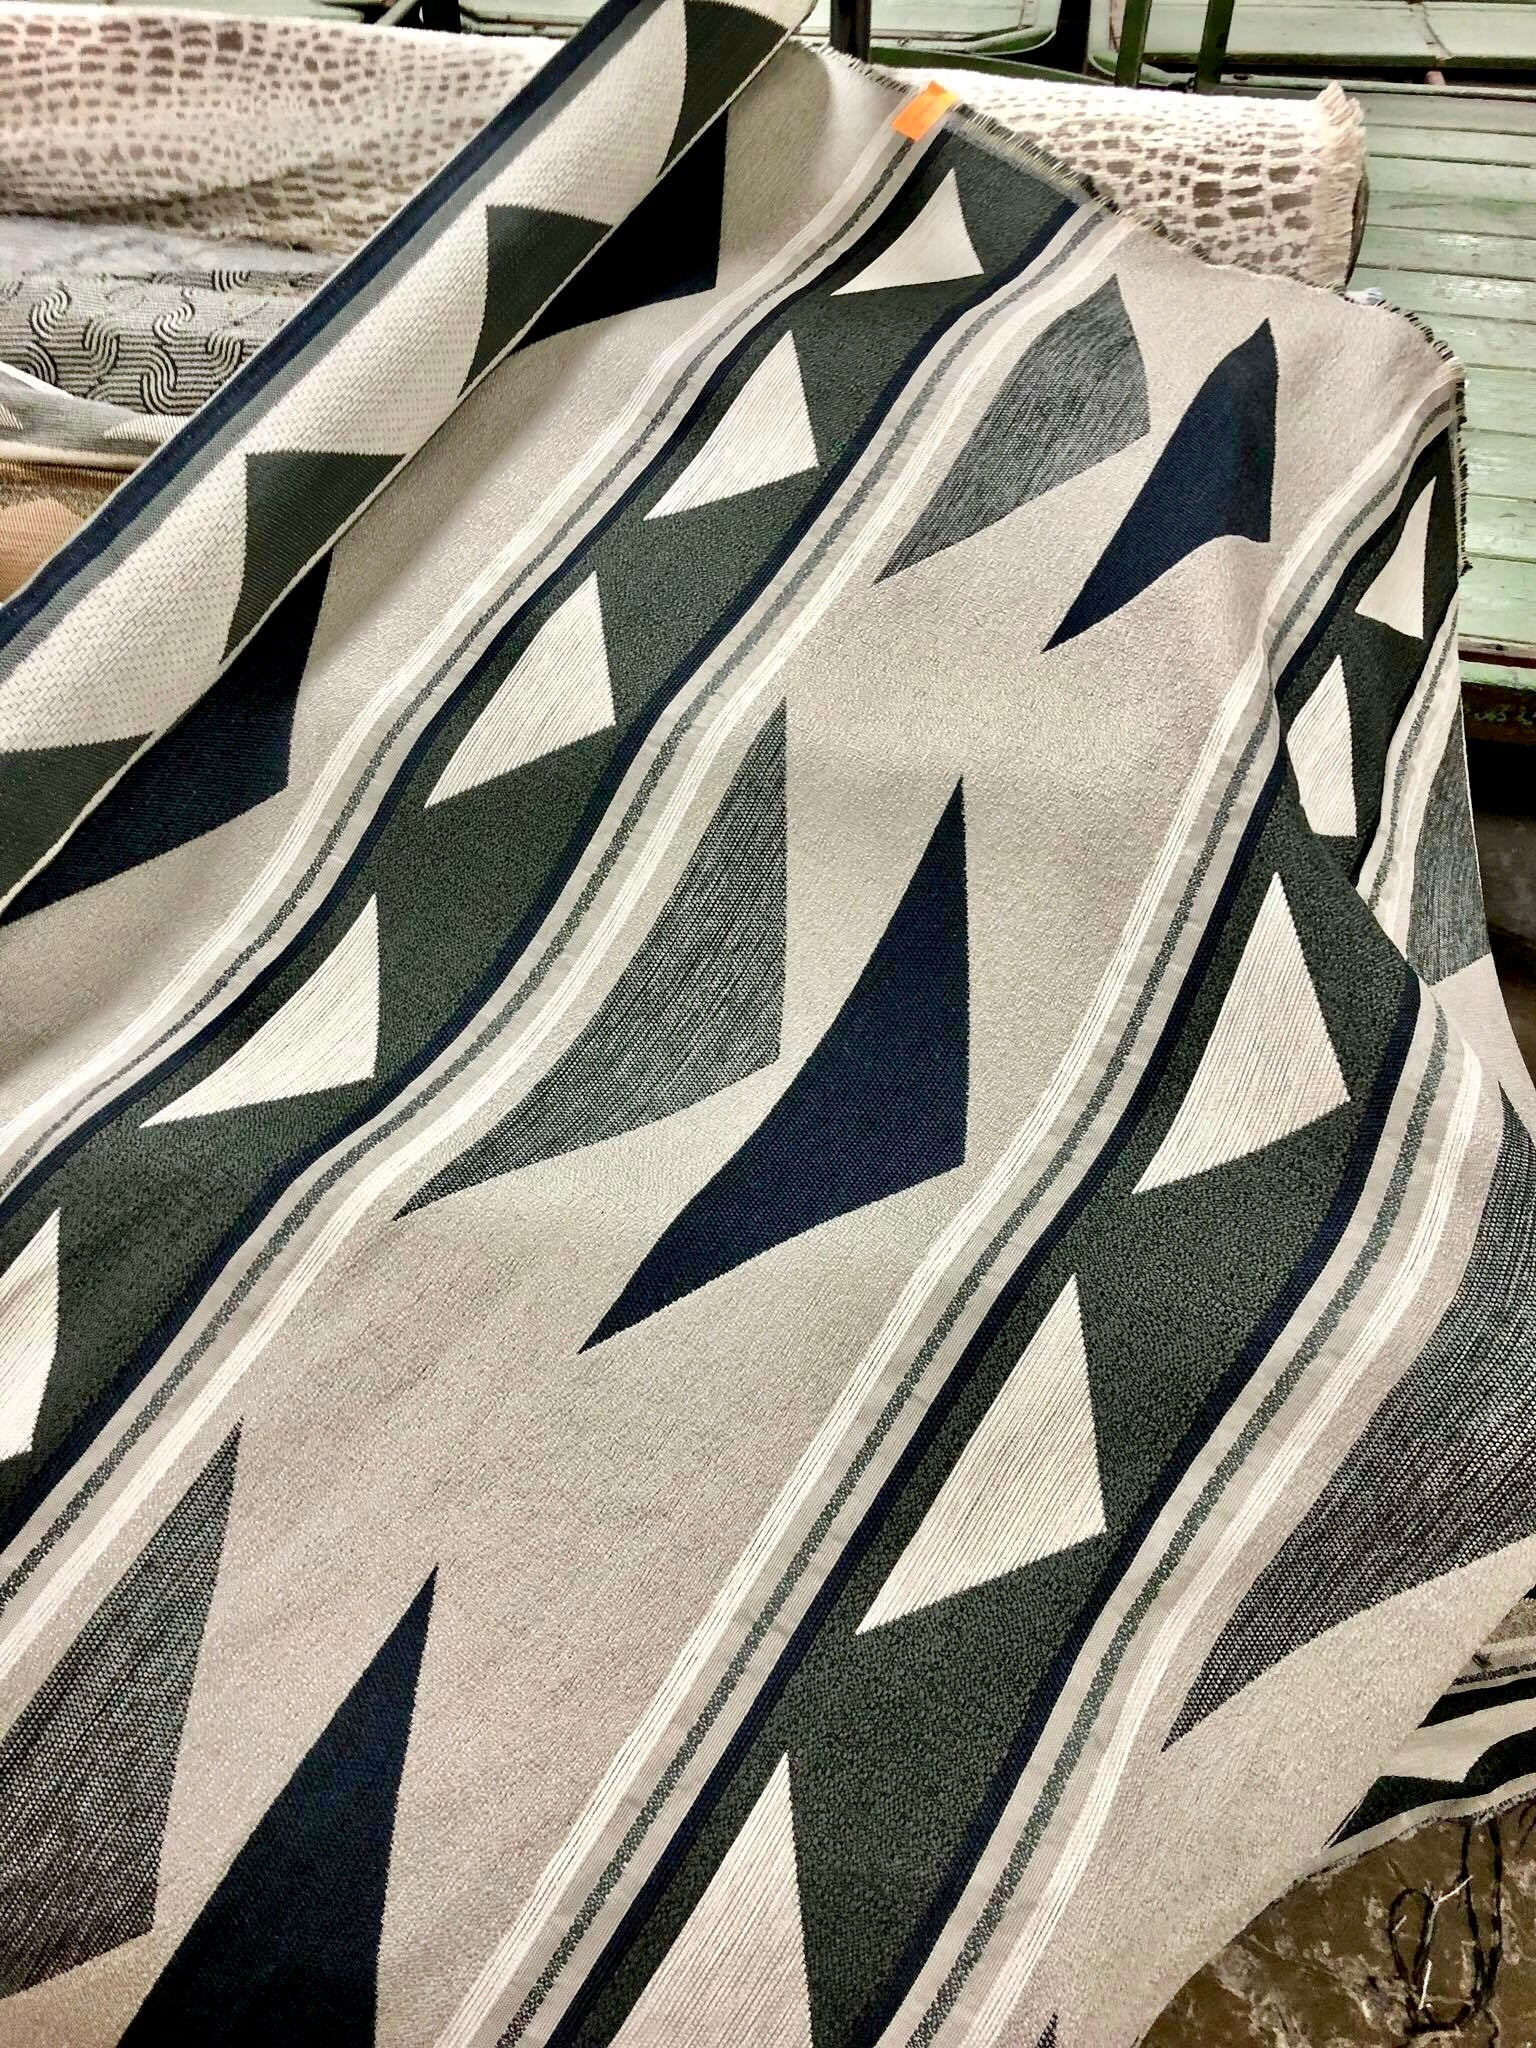 A Revolution pattern inspired by traditional Navajo Designs